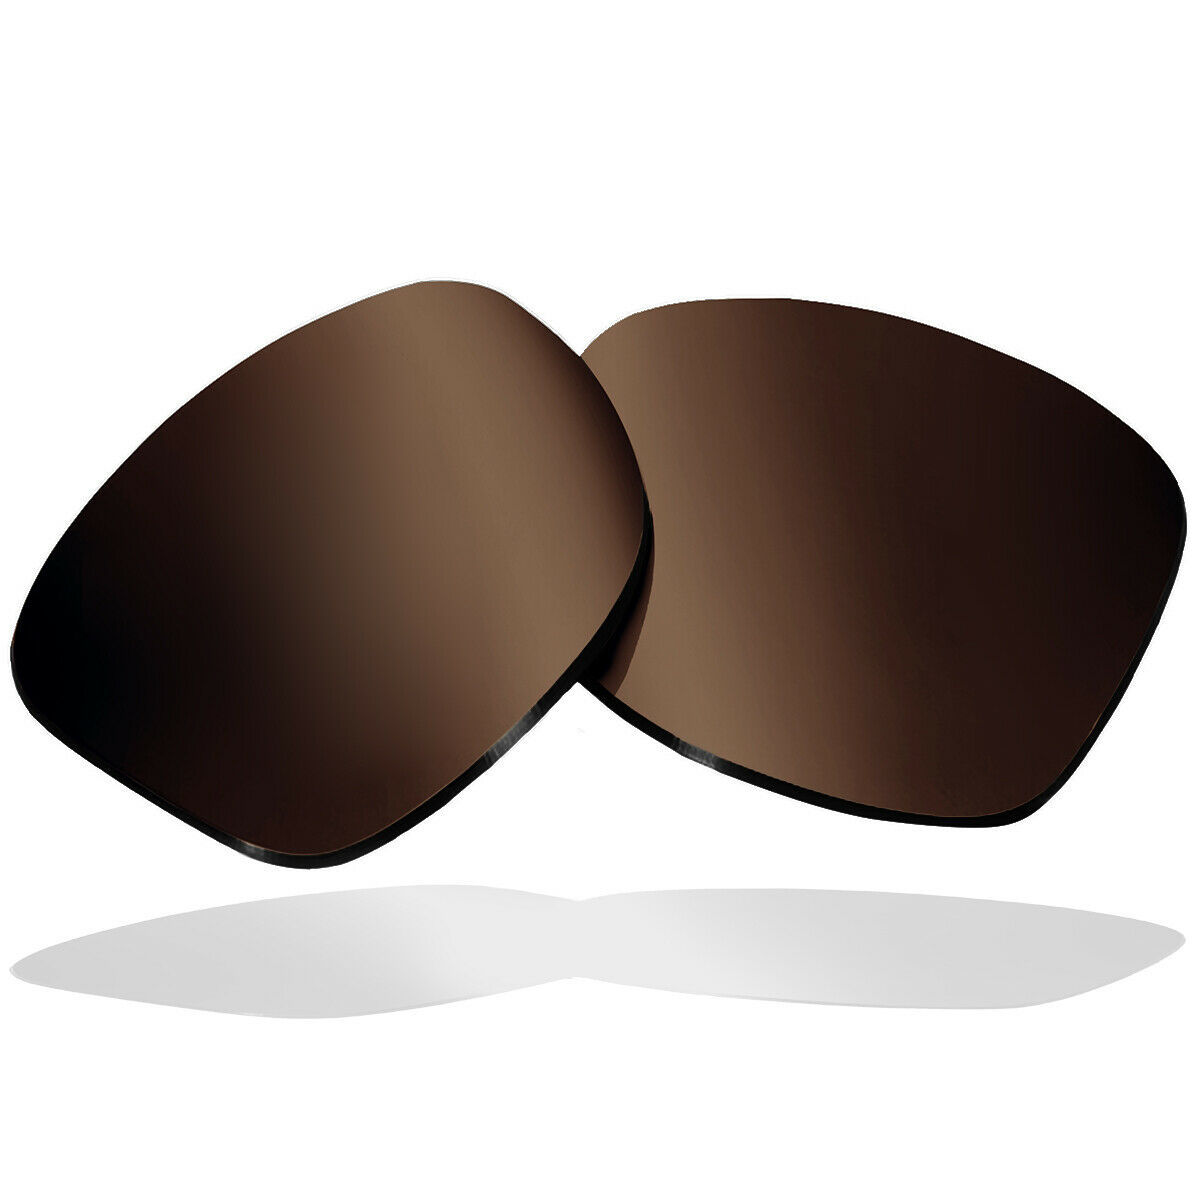 Primary image for Polarized Replacement Lenses for ELECTRIC KNOXVILLE Sunglass Anti-Scratch Brown